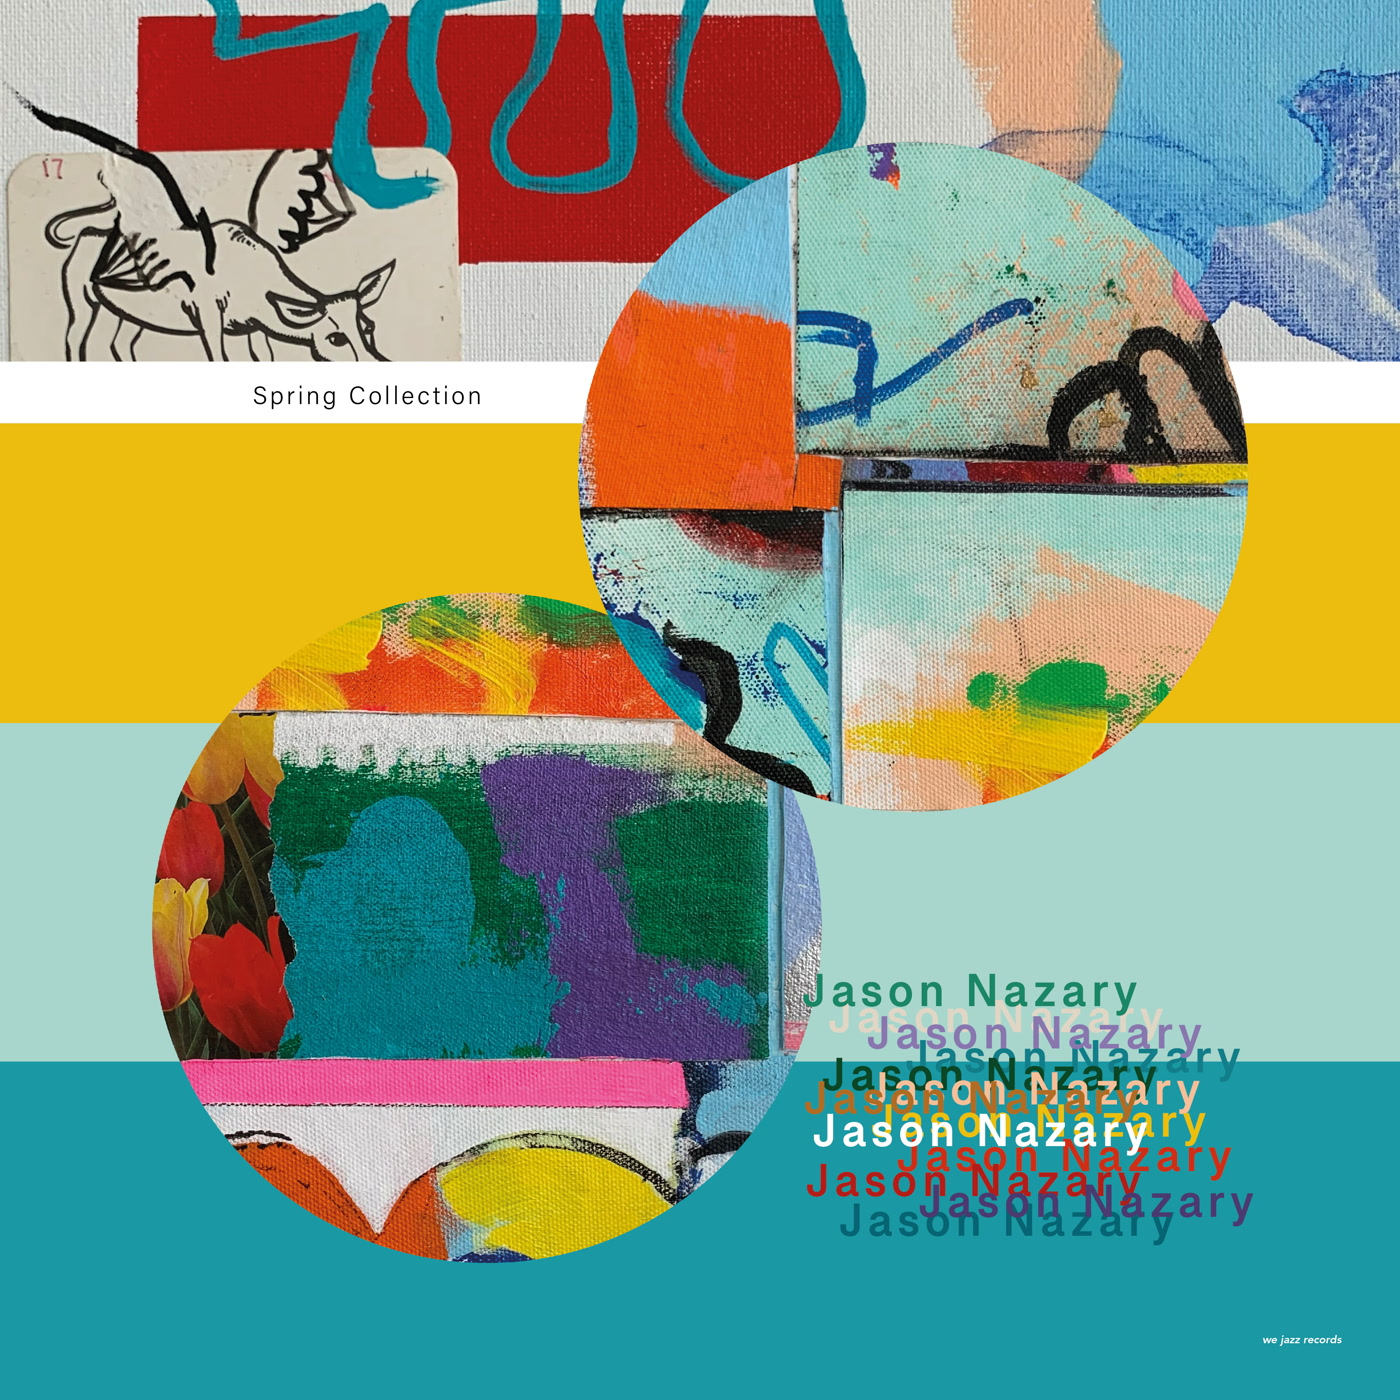 Jason Nazary – Spring Collection (We Jazz)